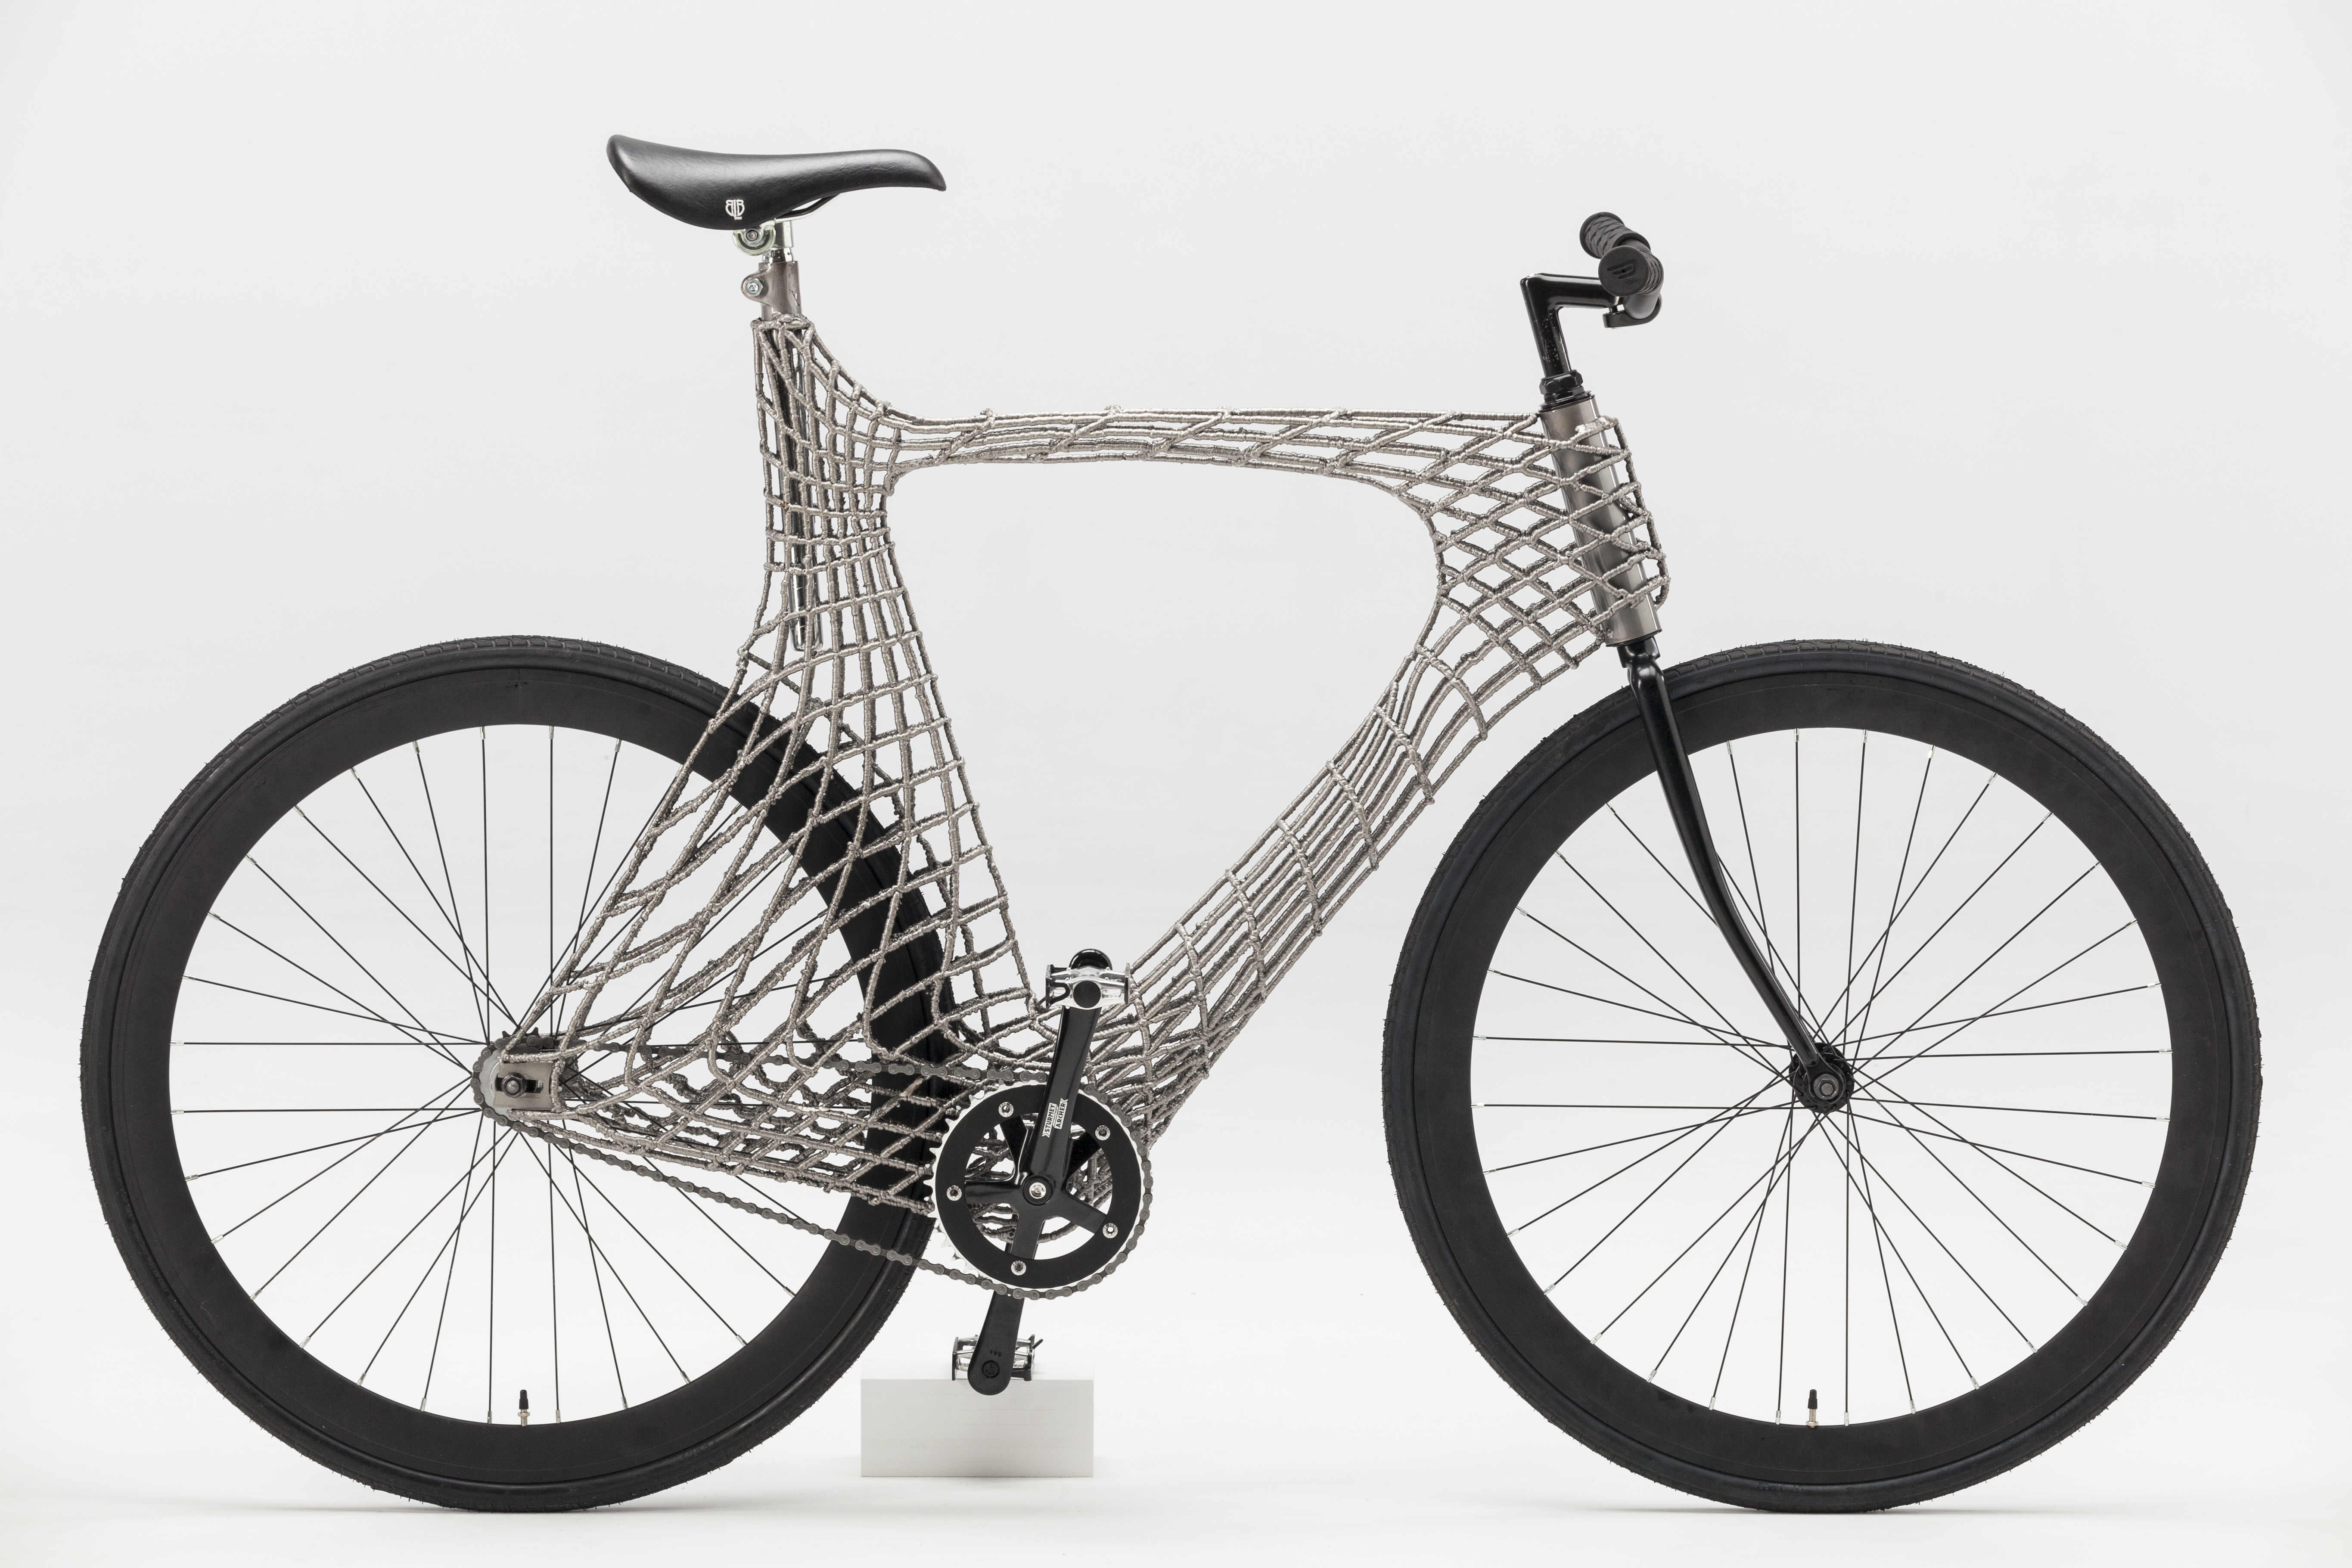 Arc_Bicycle_High_Res_1